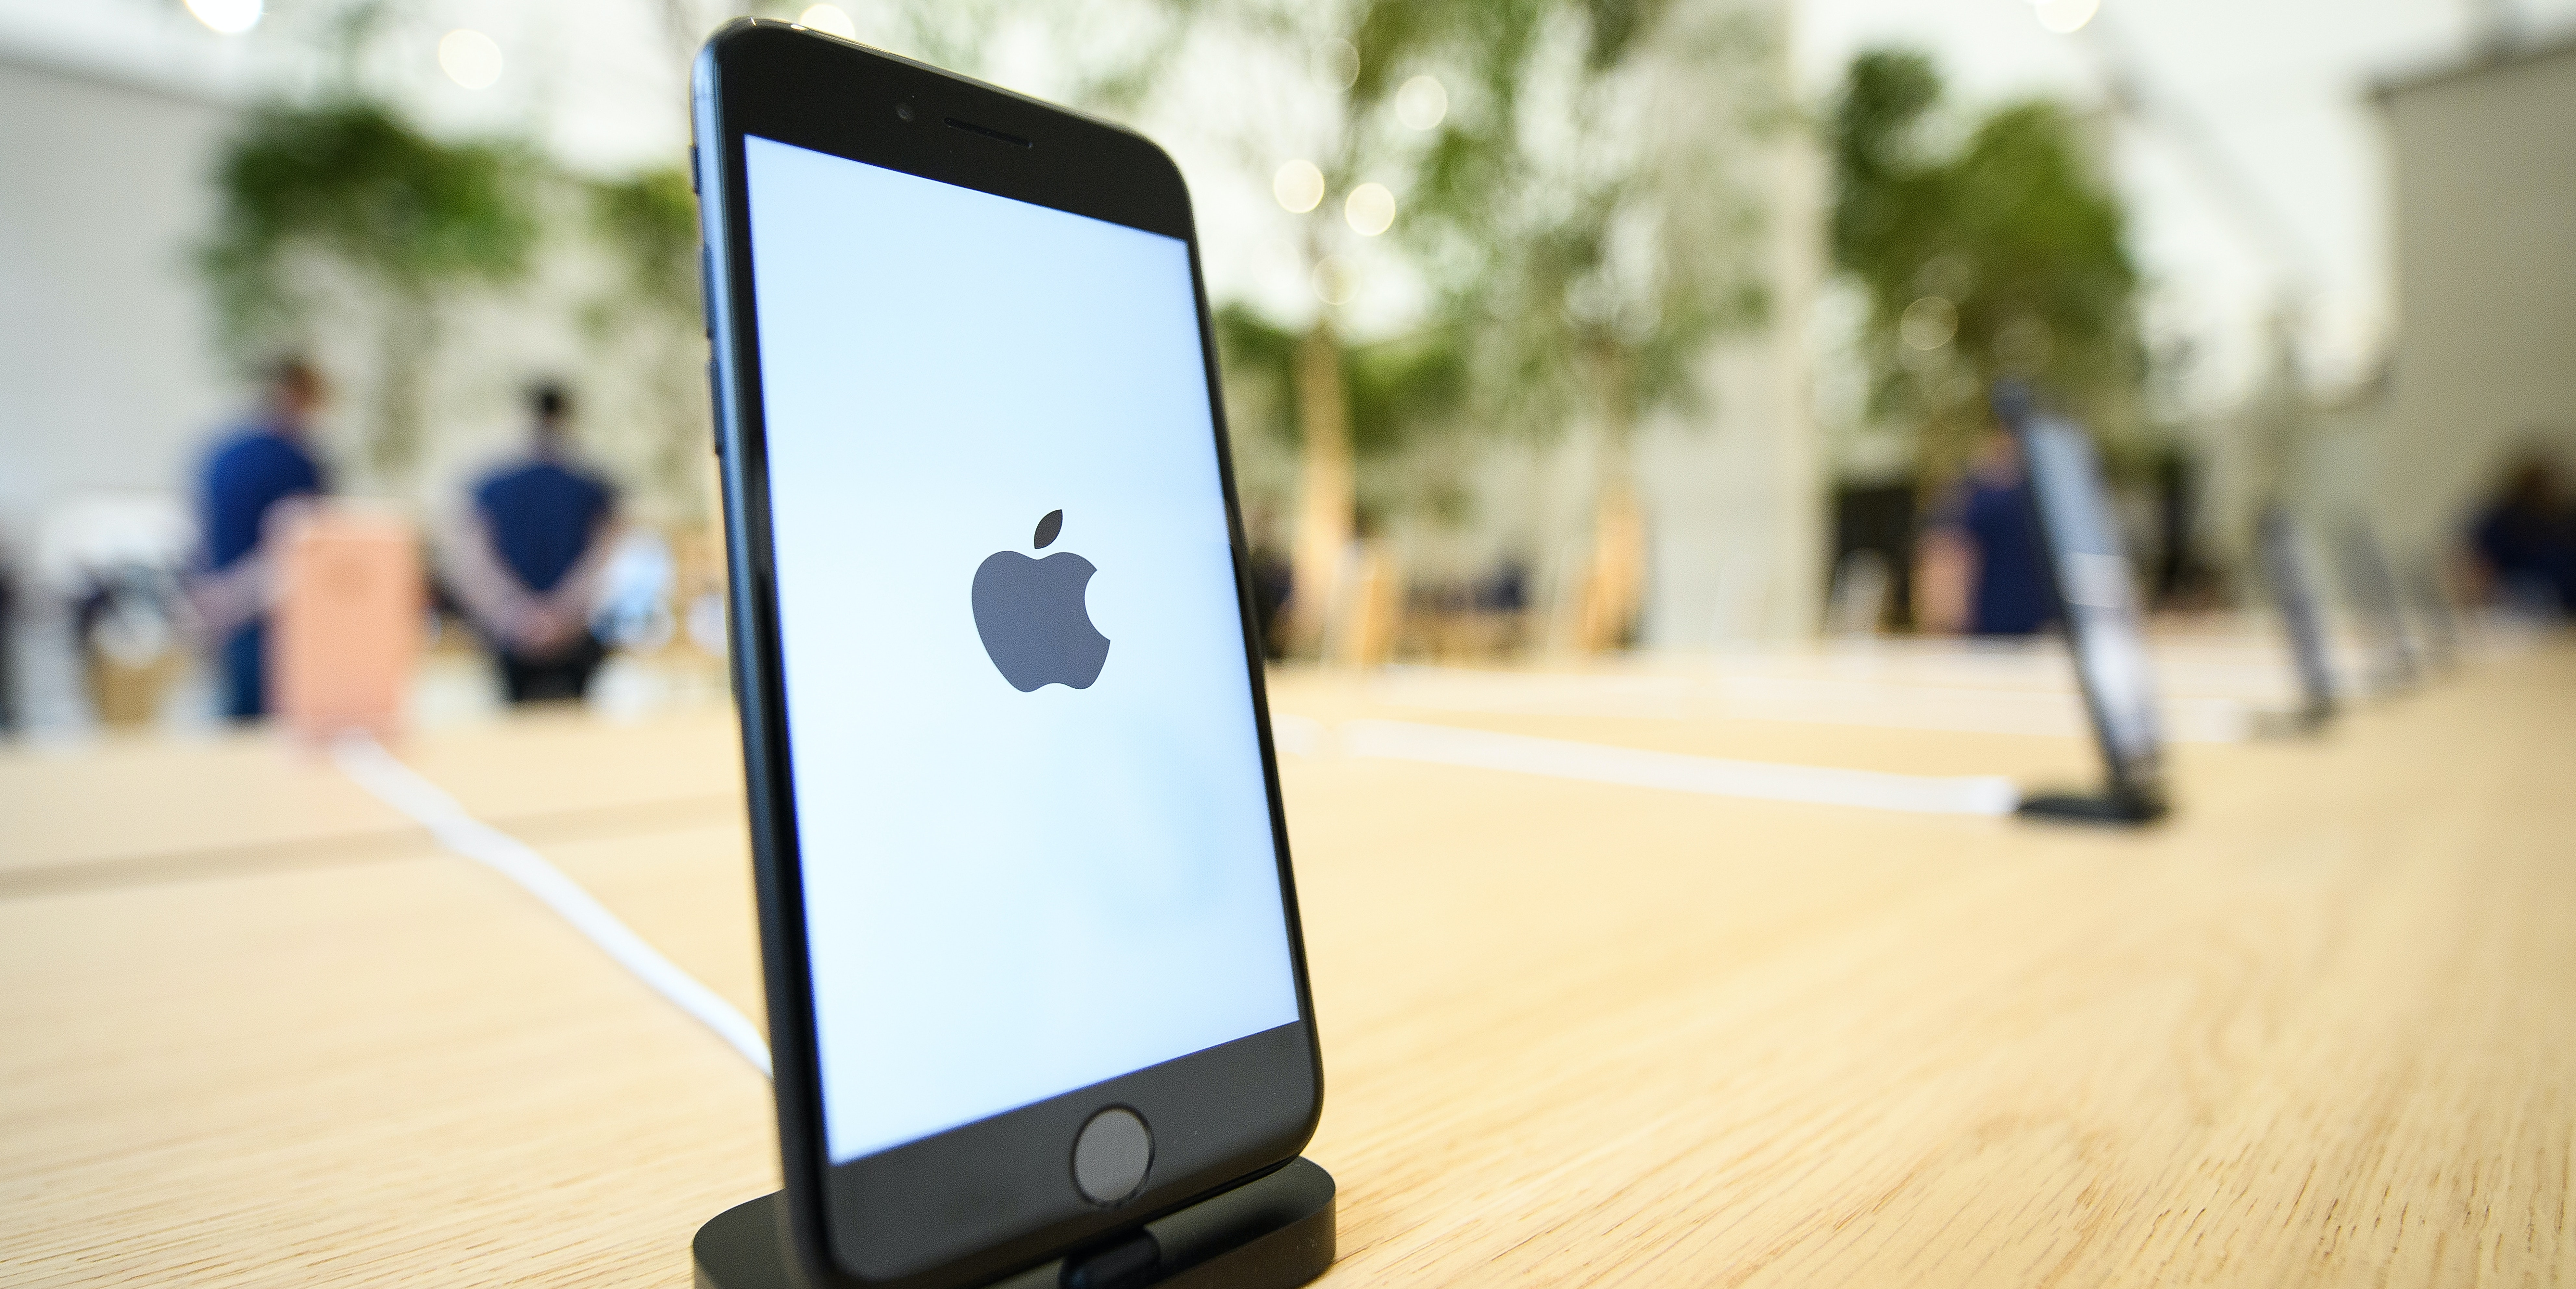 The 5 Best iOS 10 Features You Don't Know About